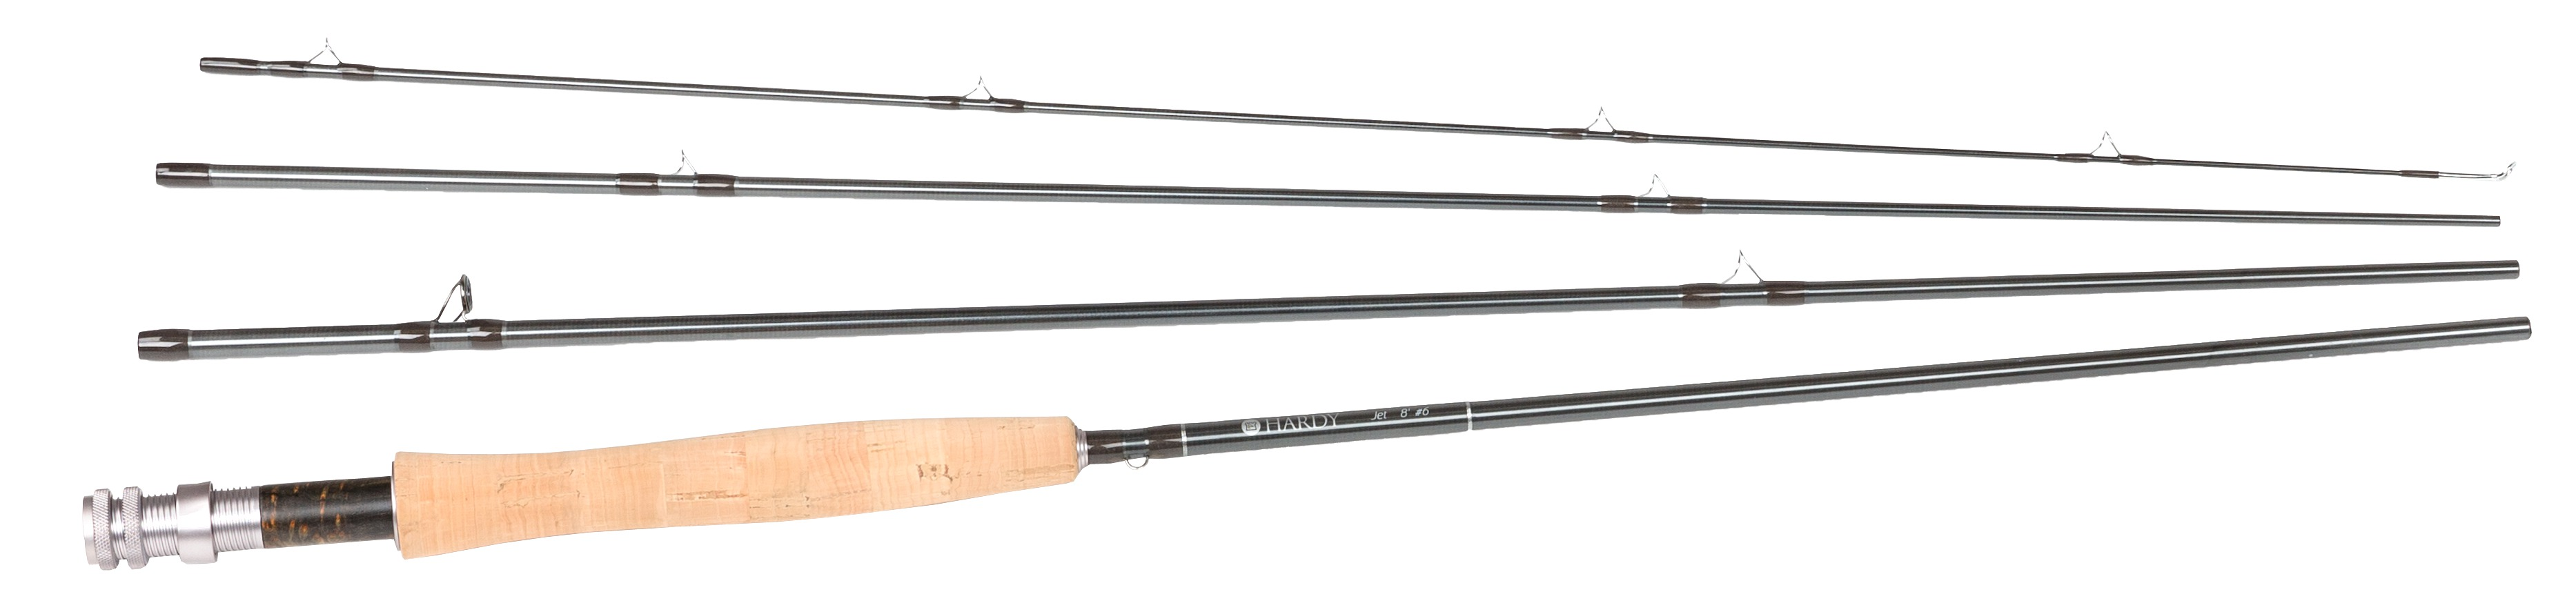 What makes fishing rods valuable